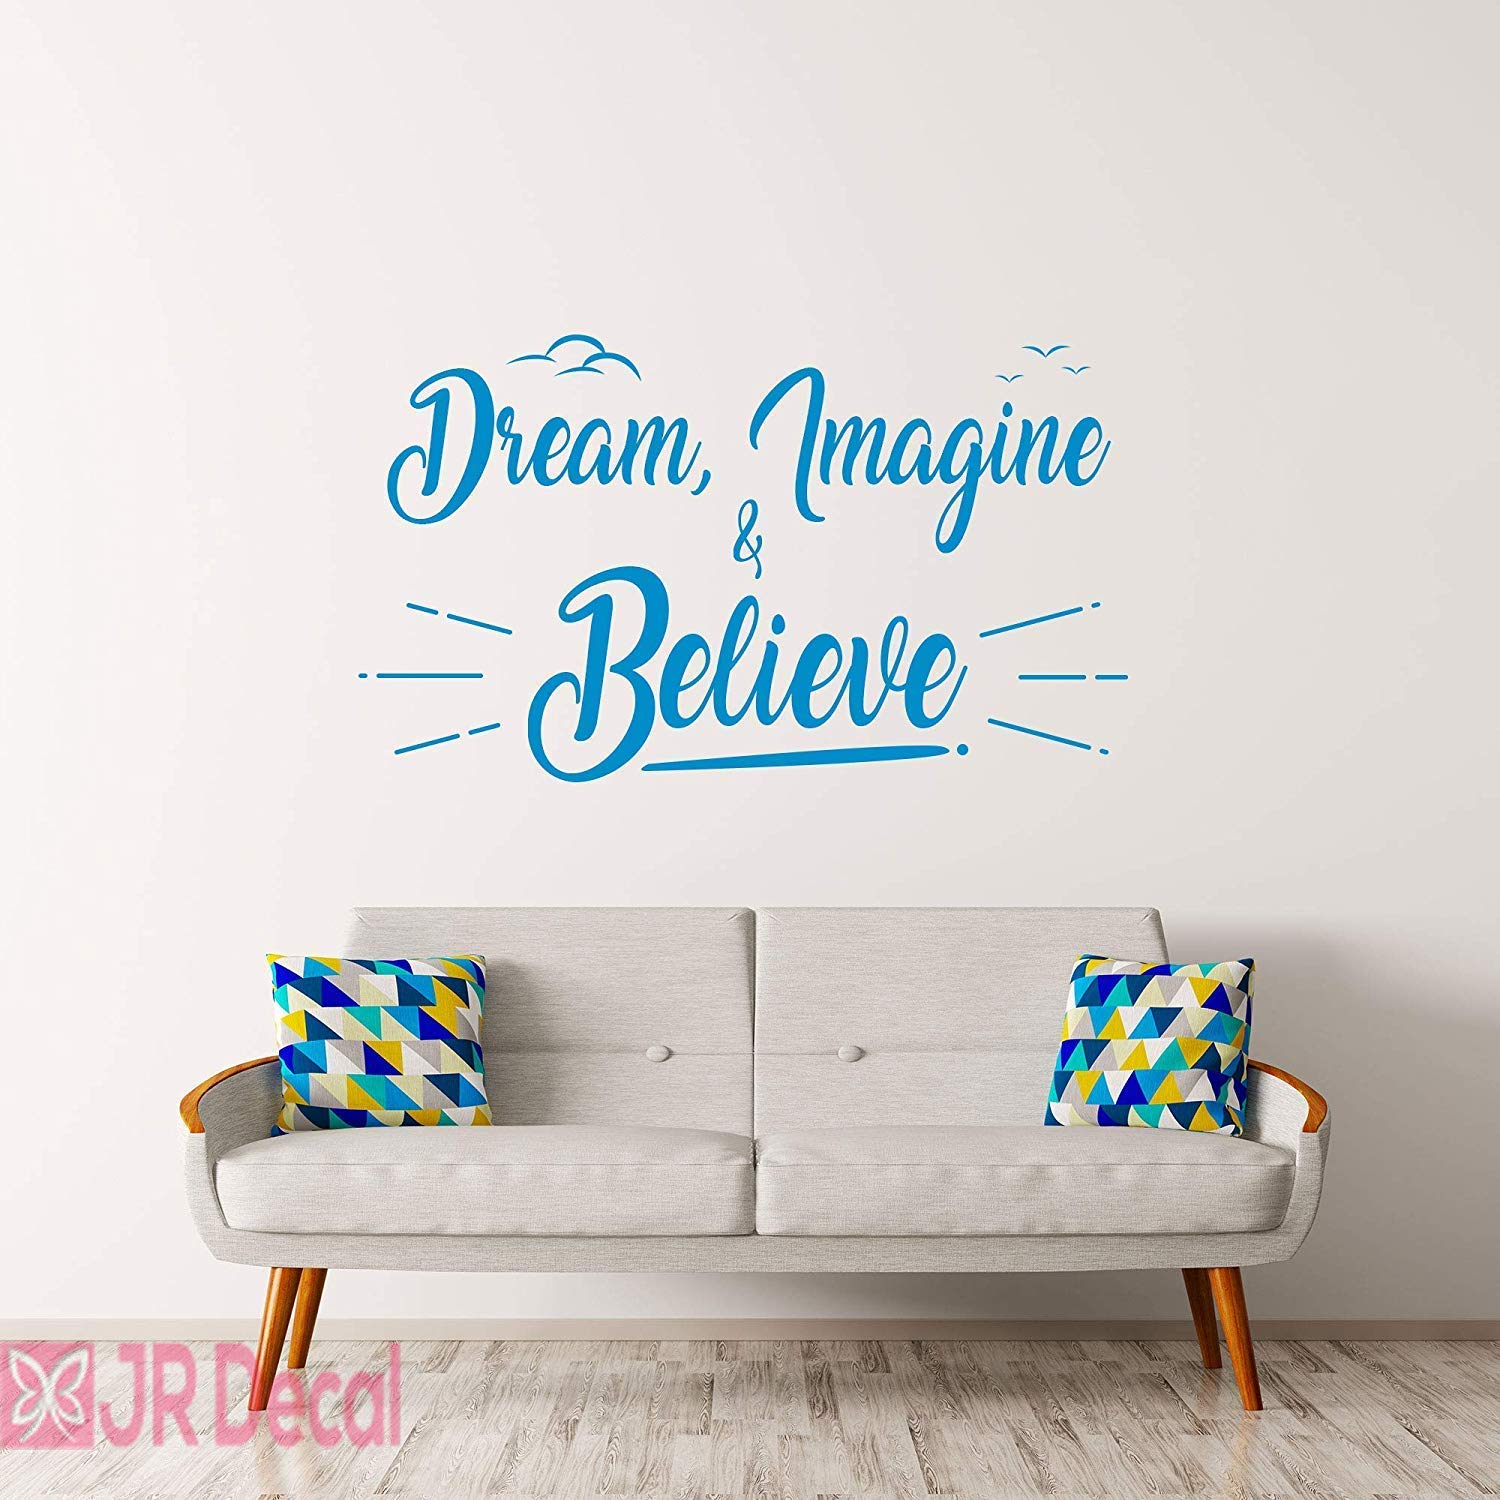 Achieve Wall Sticker Inspiring Quote For Kid Room Decoration Imagine Quote Wall Decal Children Quote Decor CG1575 Believe Wall Decal